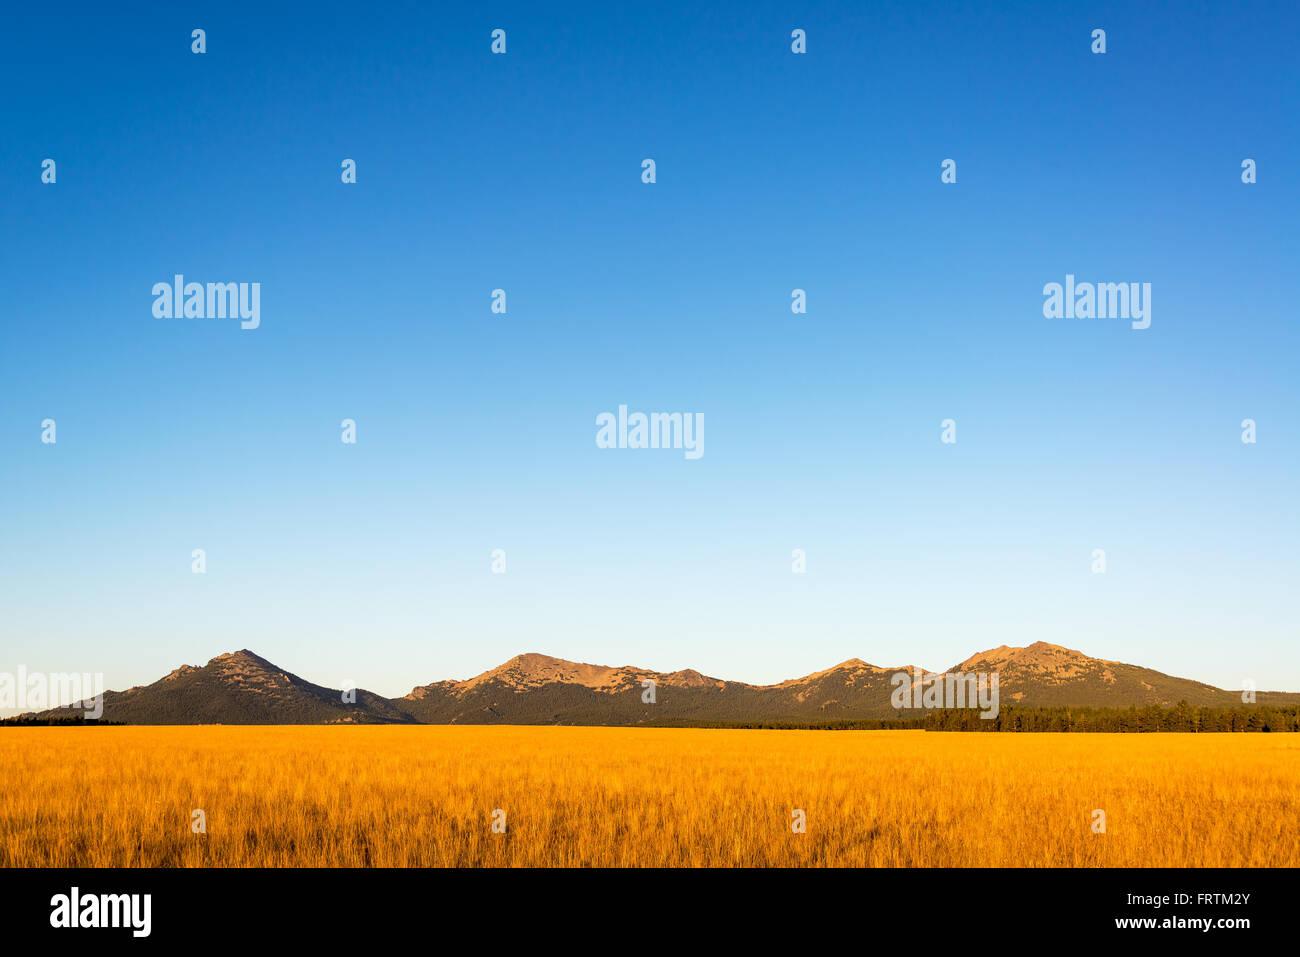 Bighorn Mountain Range in Wyoming immerso nella bellissima Early Morning Light Immagini Stock